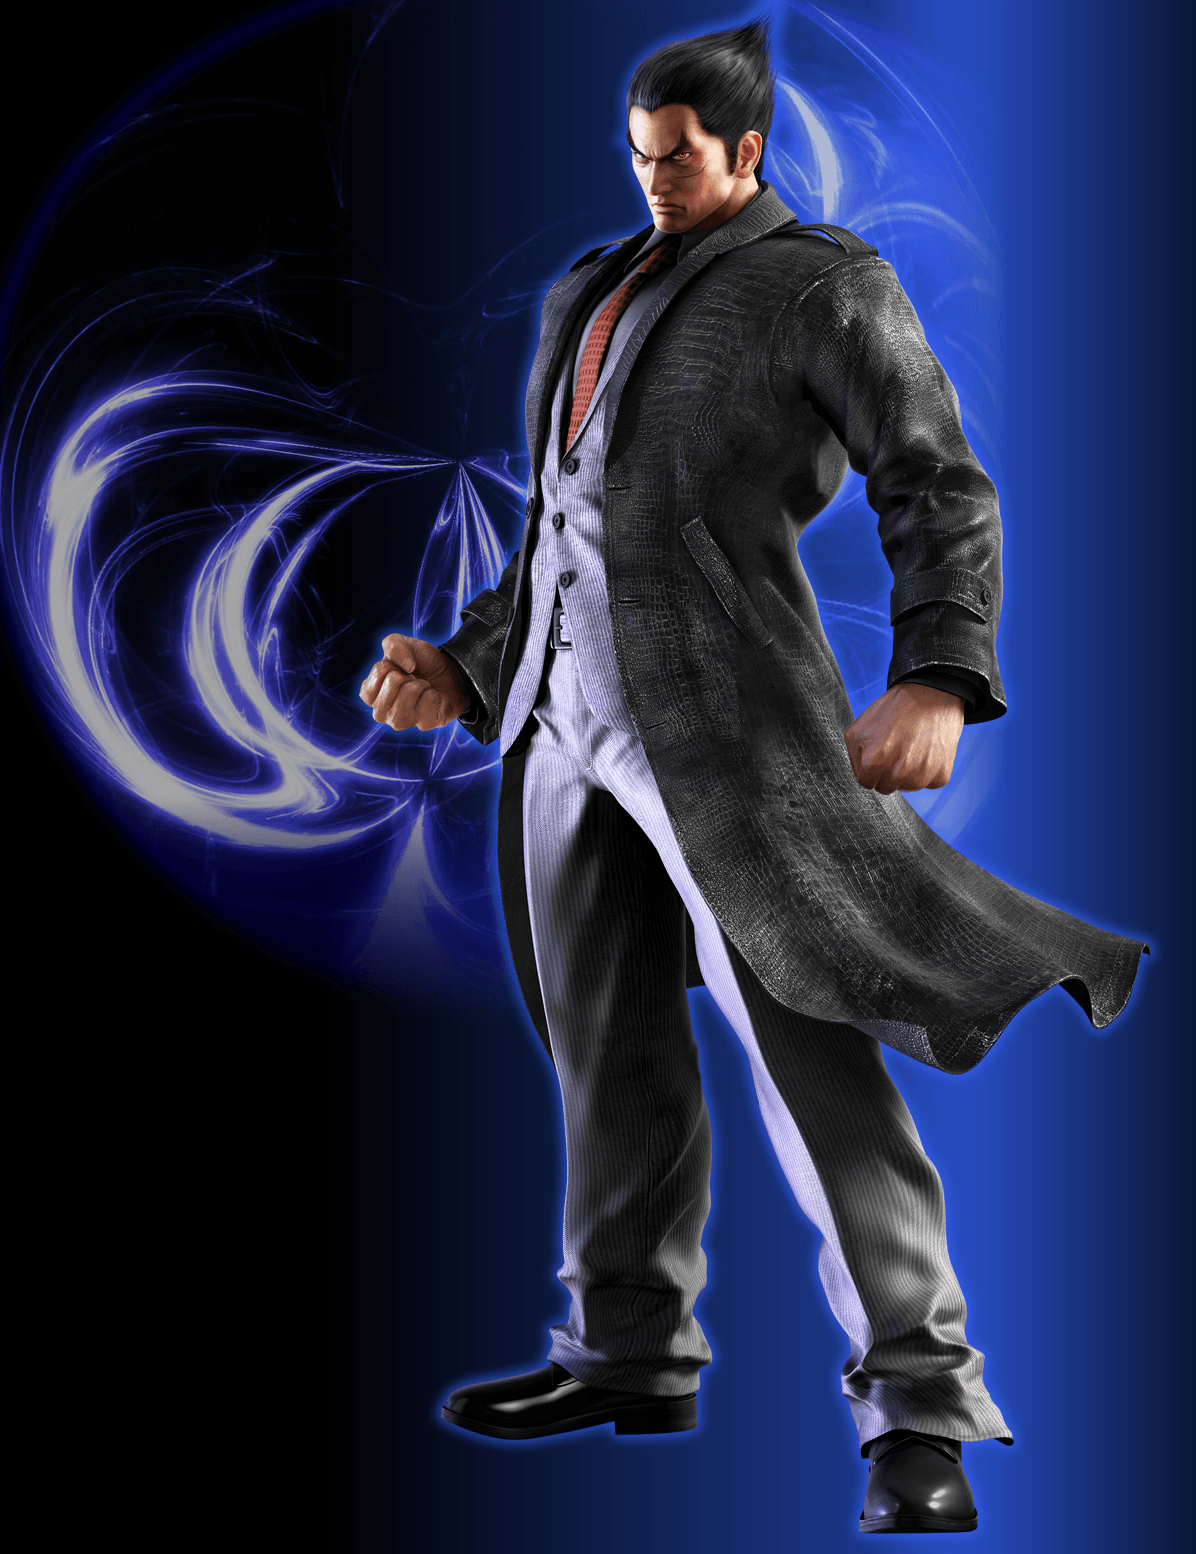 Kazuya Mishima/Gallery | Villains Wiki | FANDOM powered by Wikia